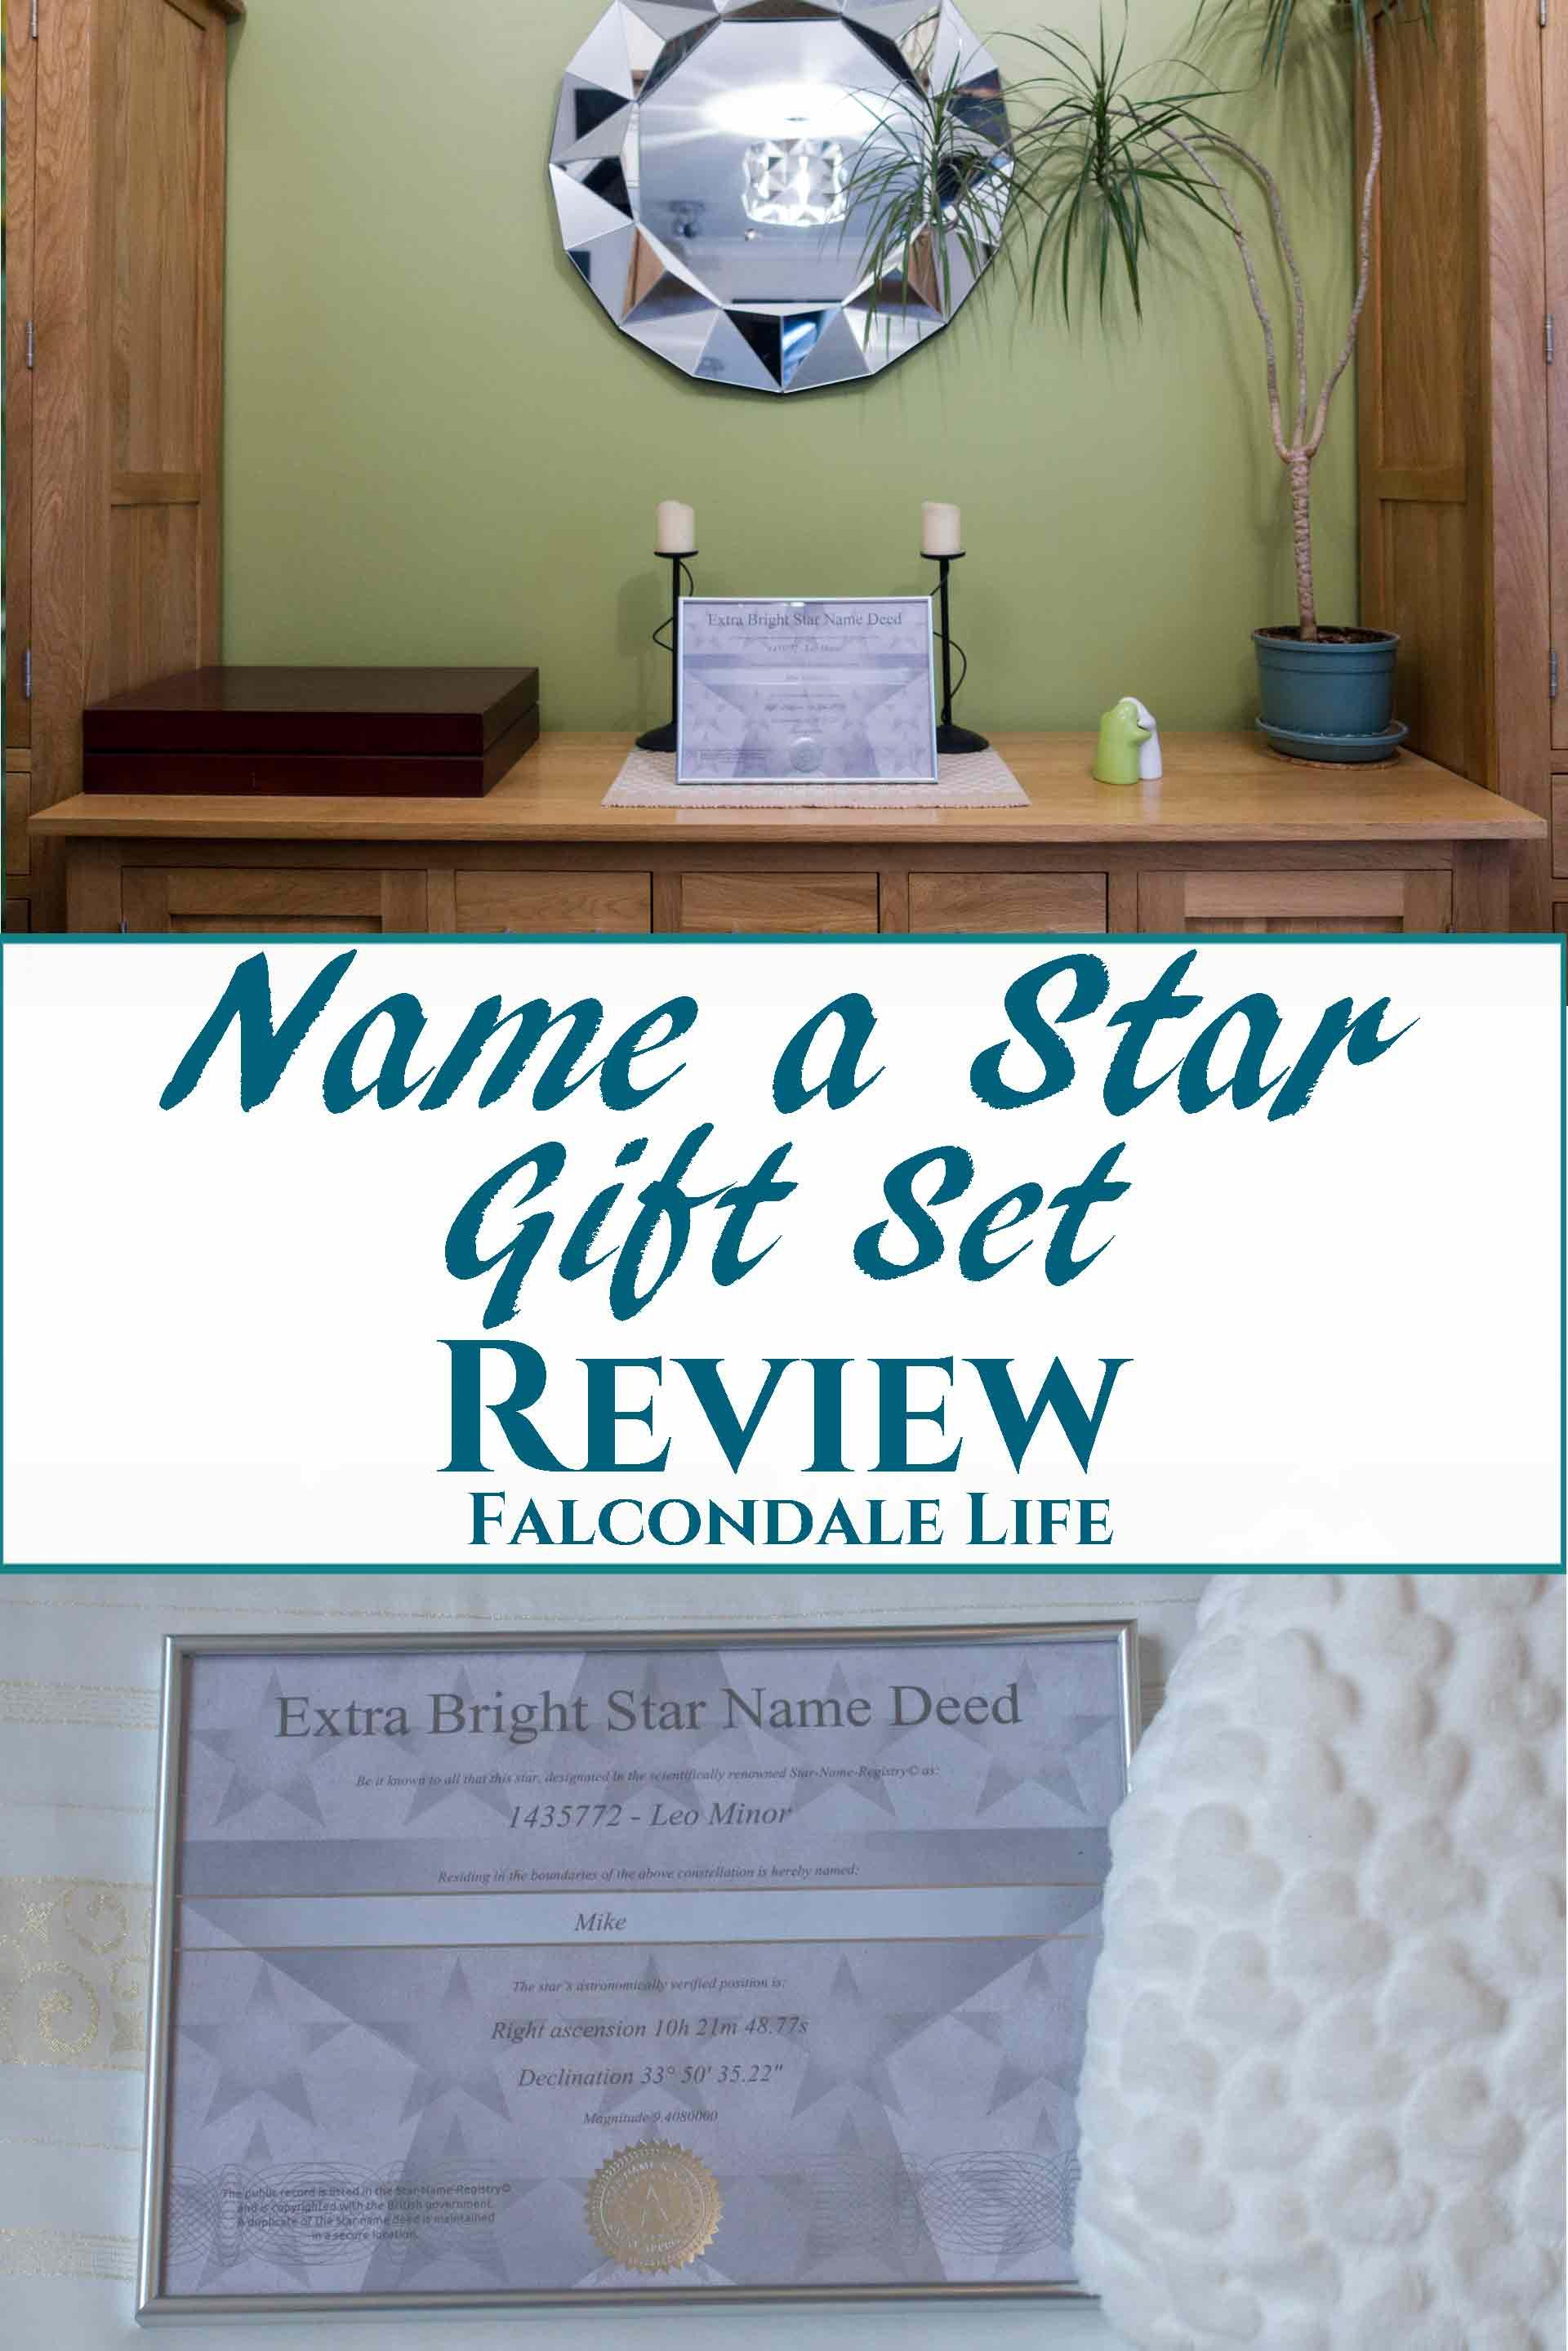 Name a Star Gift Set Review